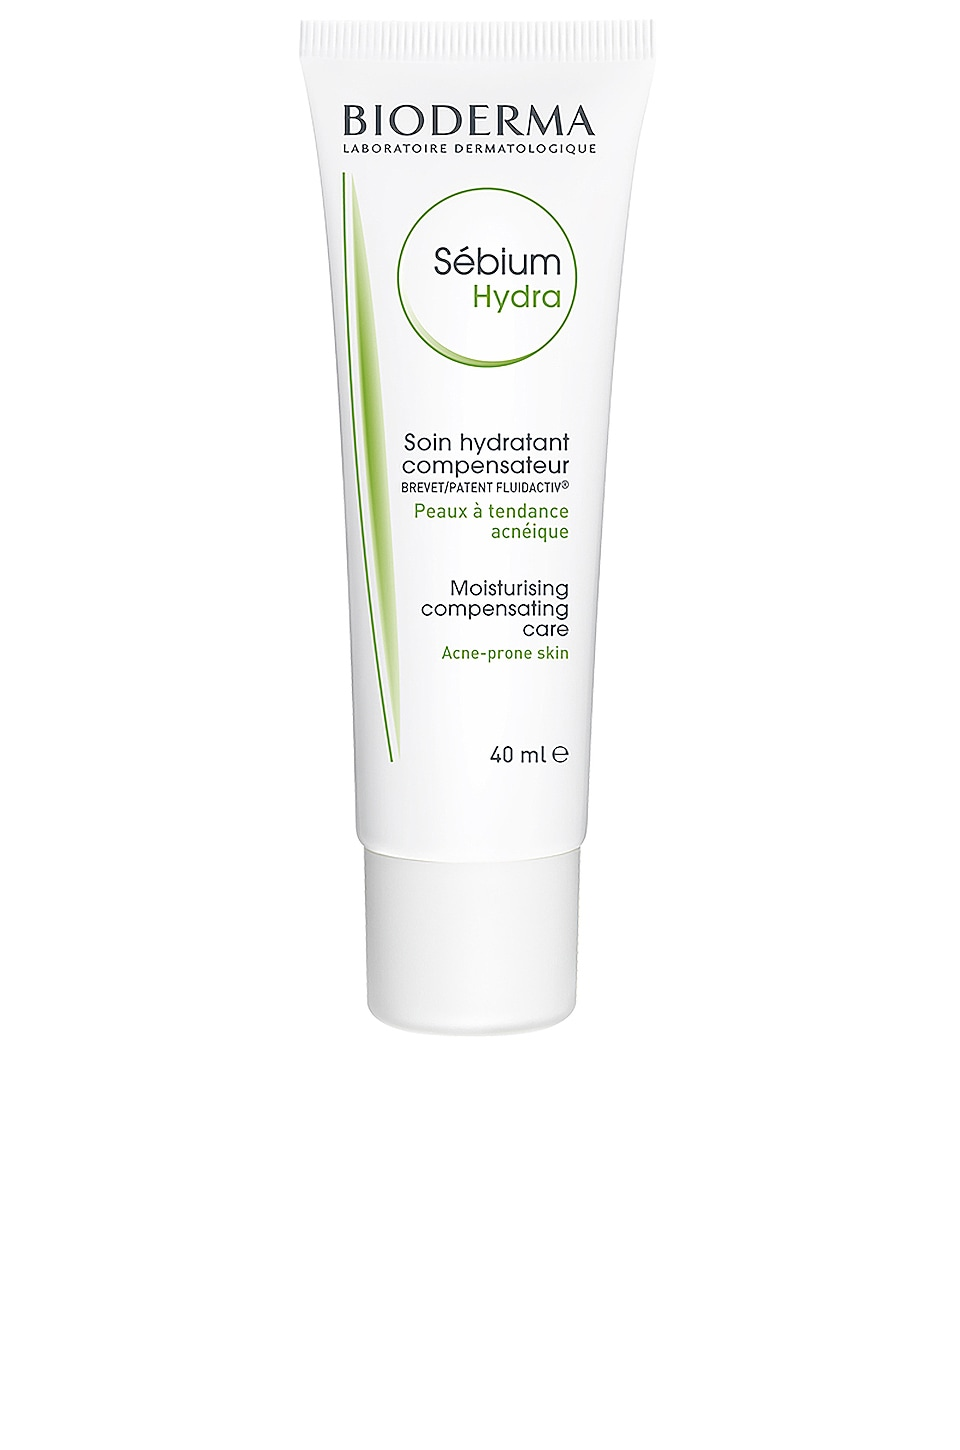 Bioderma Sebium Hydra Ultra-Moisturizing Compensating Cream